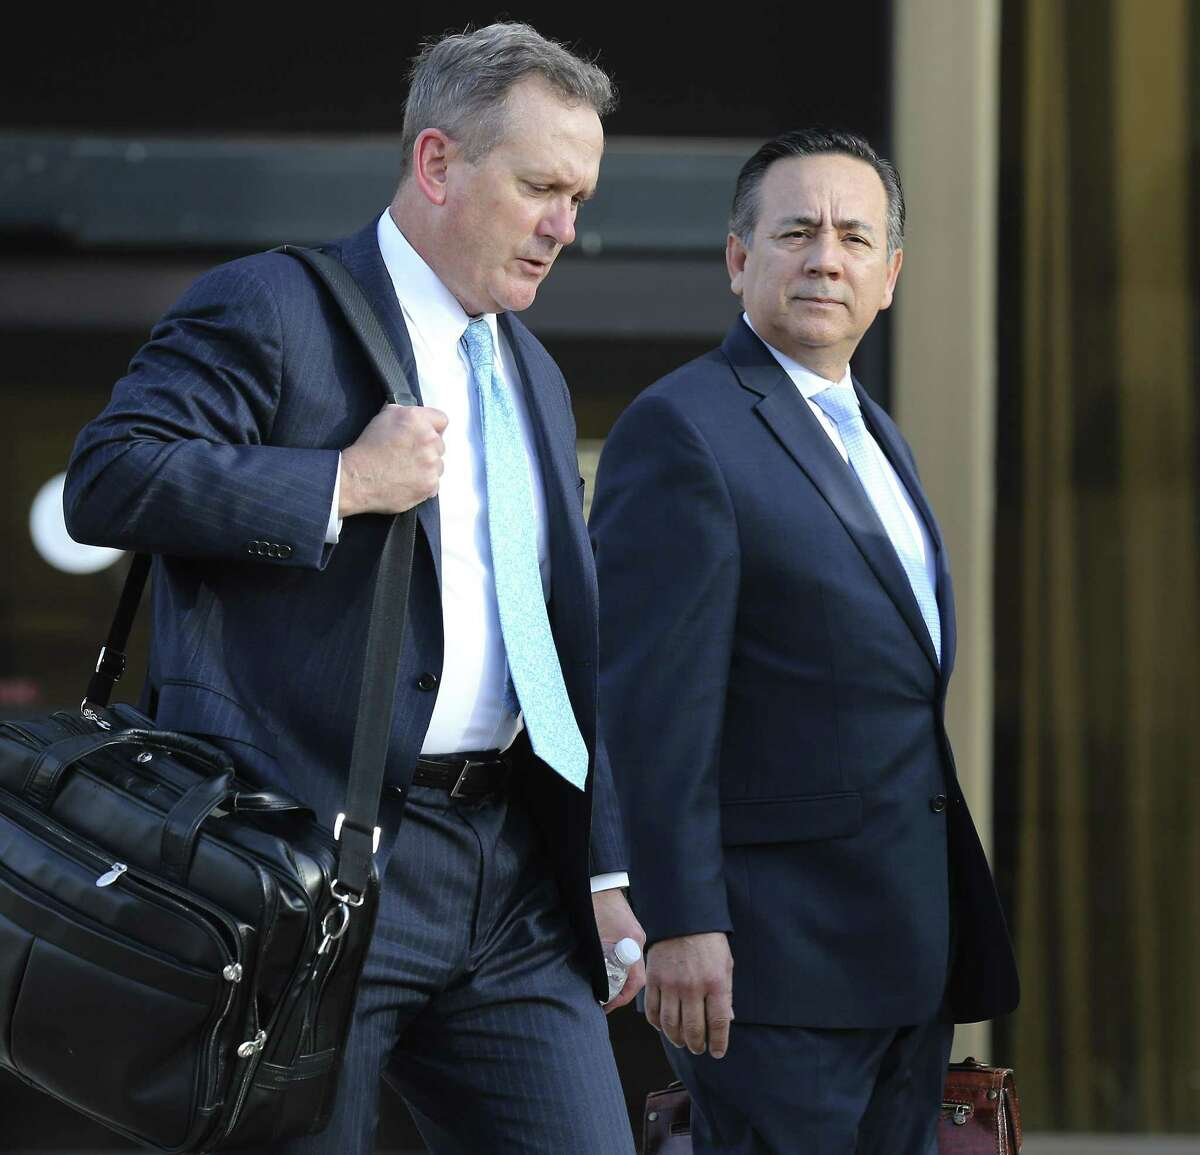 State Sen. Carlos Uresti (right) leaves with his attorneys from the John Wood Federal Courthouse after another day of testimony surrounding his indictment last year on 11 felony charges, including conspiracy to commit wire fraud, securities fraud and money laundering, in connection with his role at FourWinds Logistics. (Kin Man Hui/San Antonio Express-News)